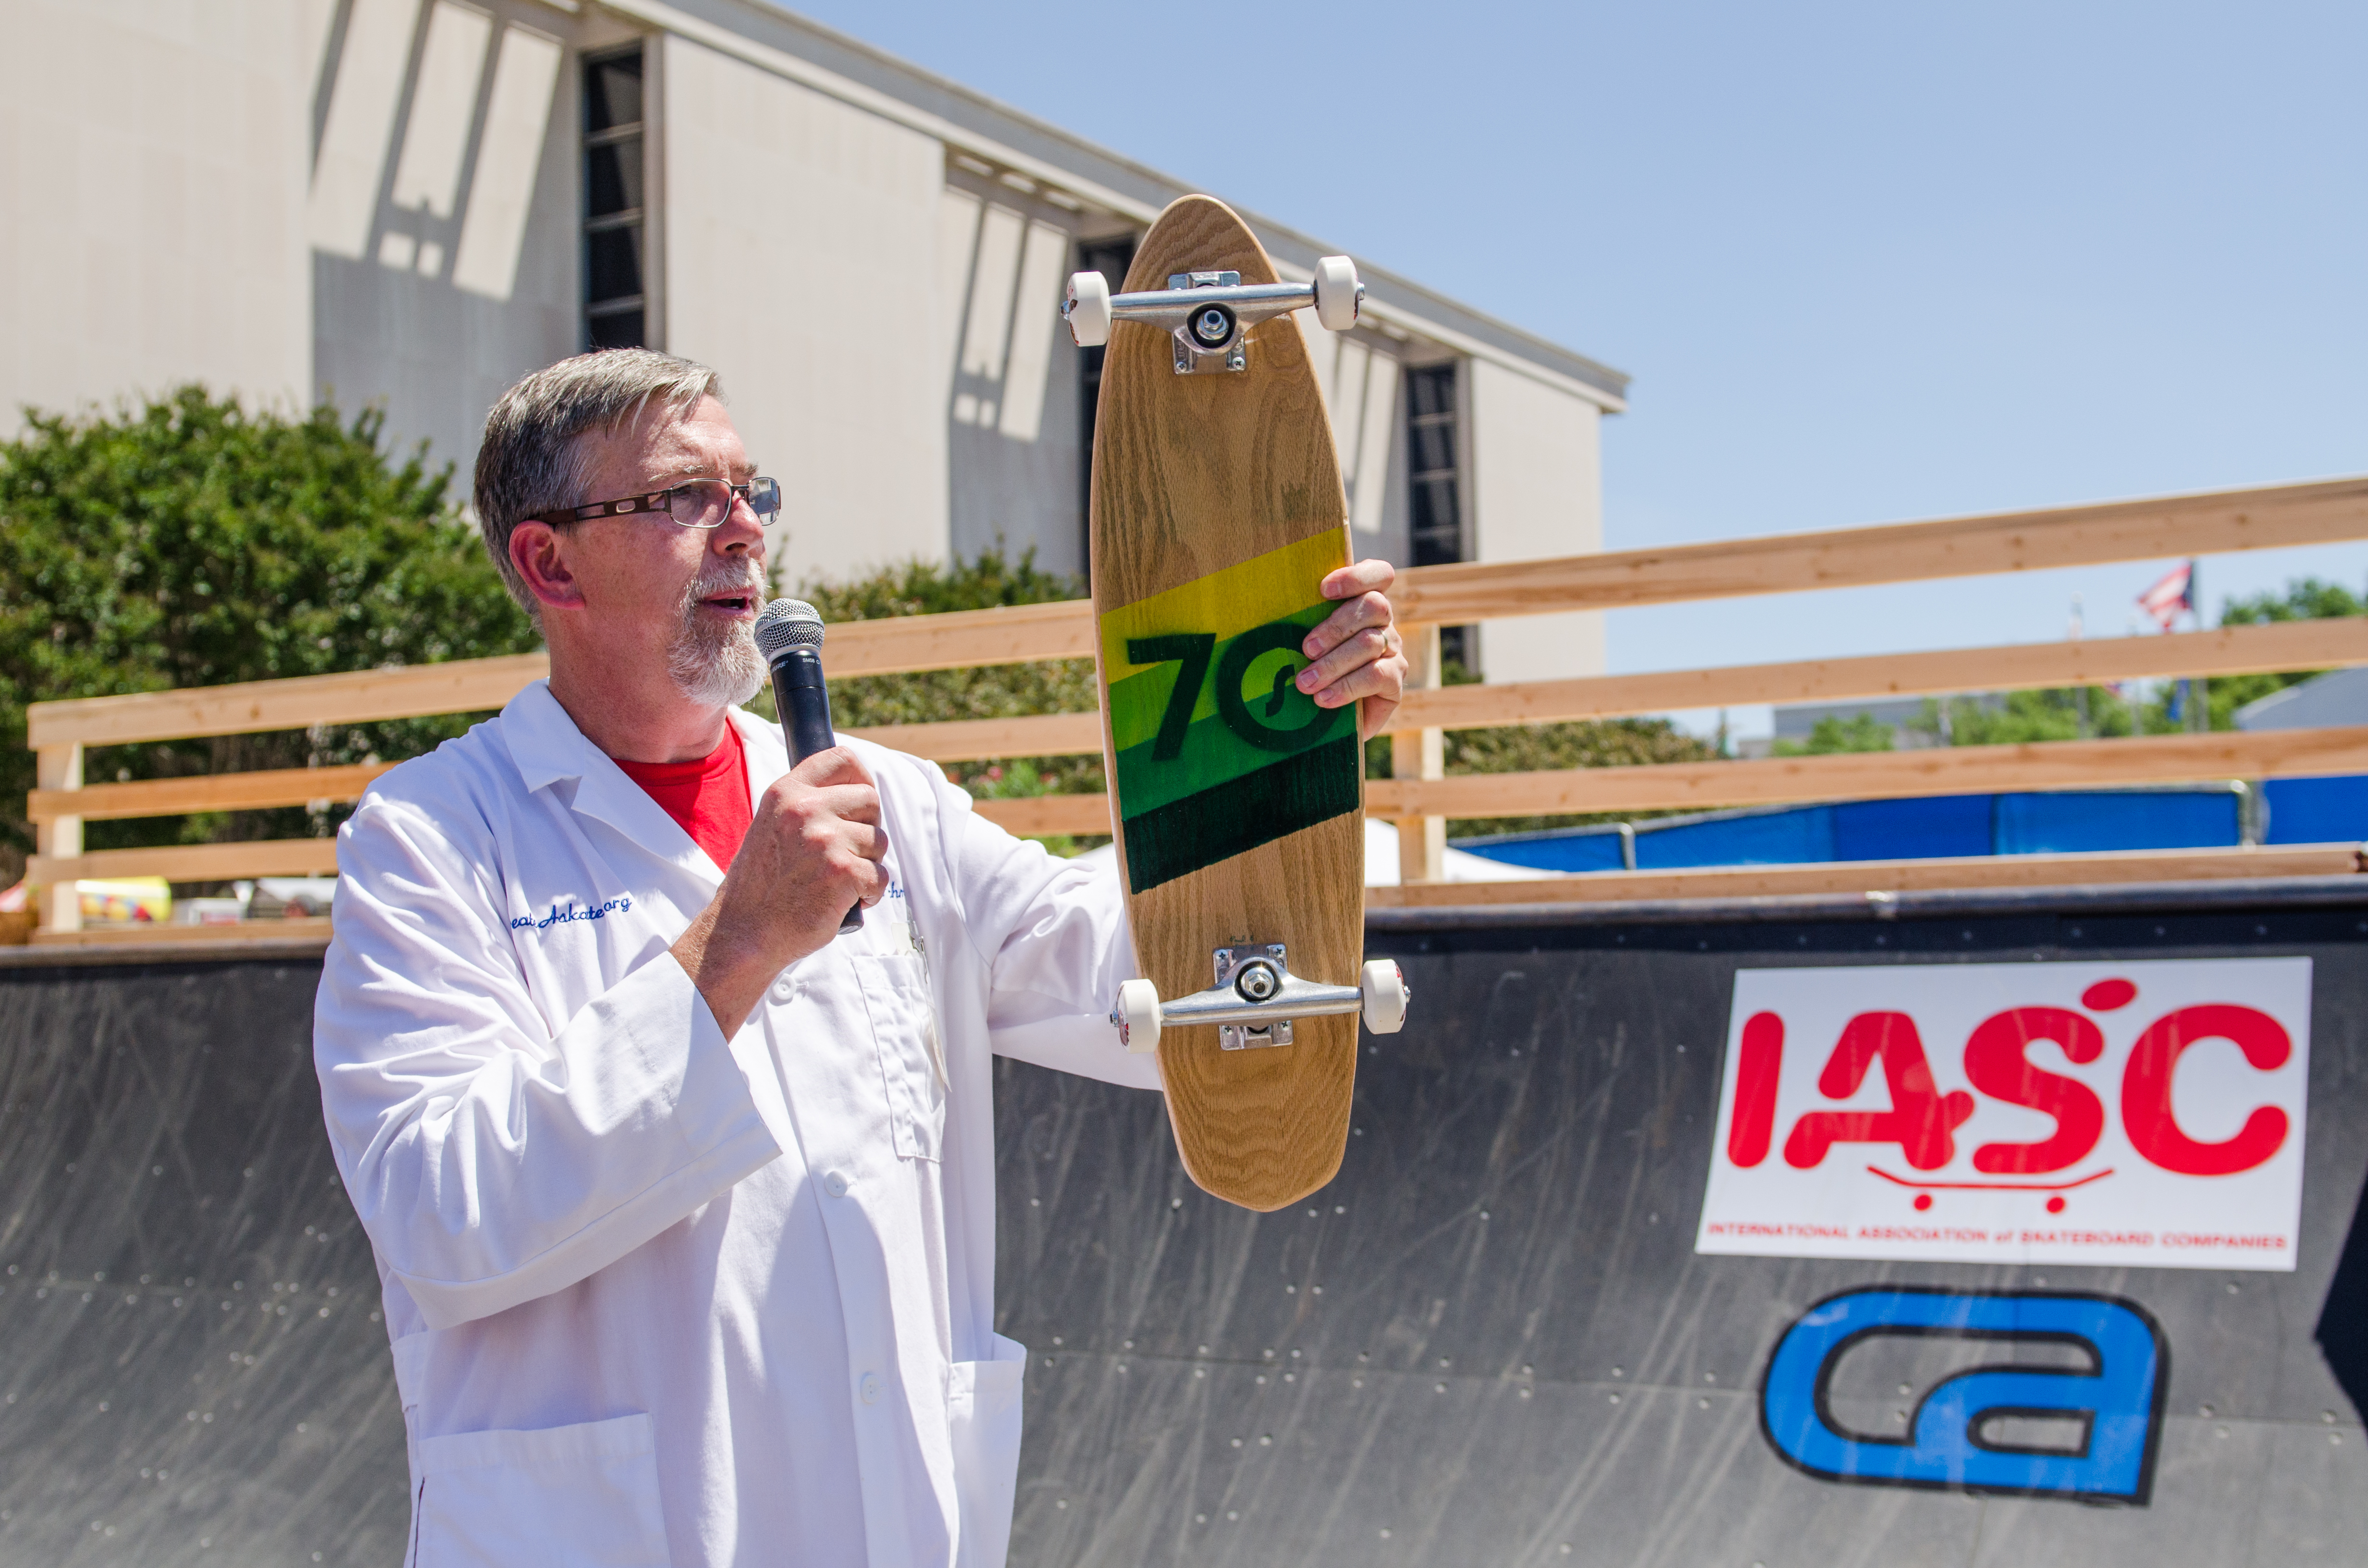 """""""Professor"""" Paul Schmitt discusses the evolution of skateboards, here showing off a deck representing the typical 1970s era technology."""